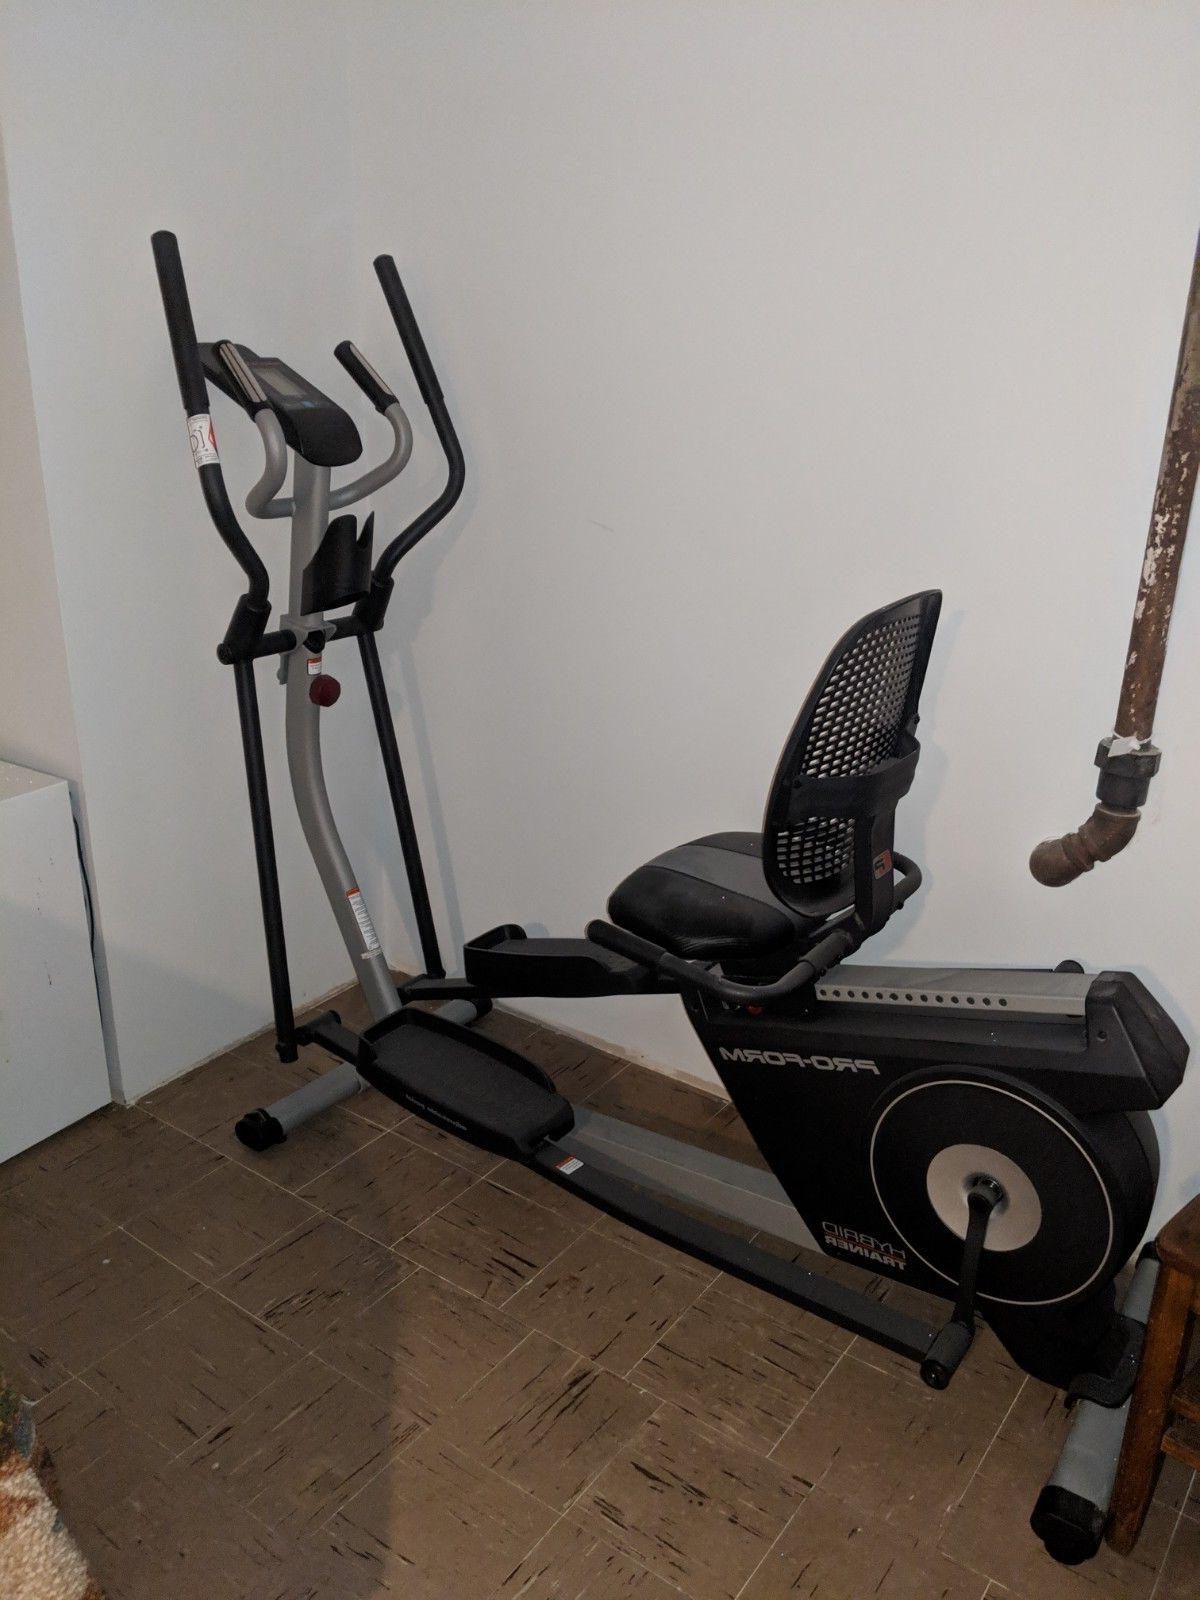 New Hybrid Trainer Elliptical And Rebent Bike